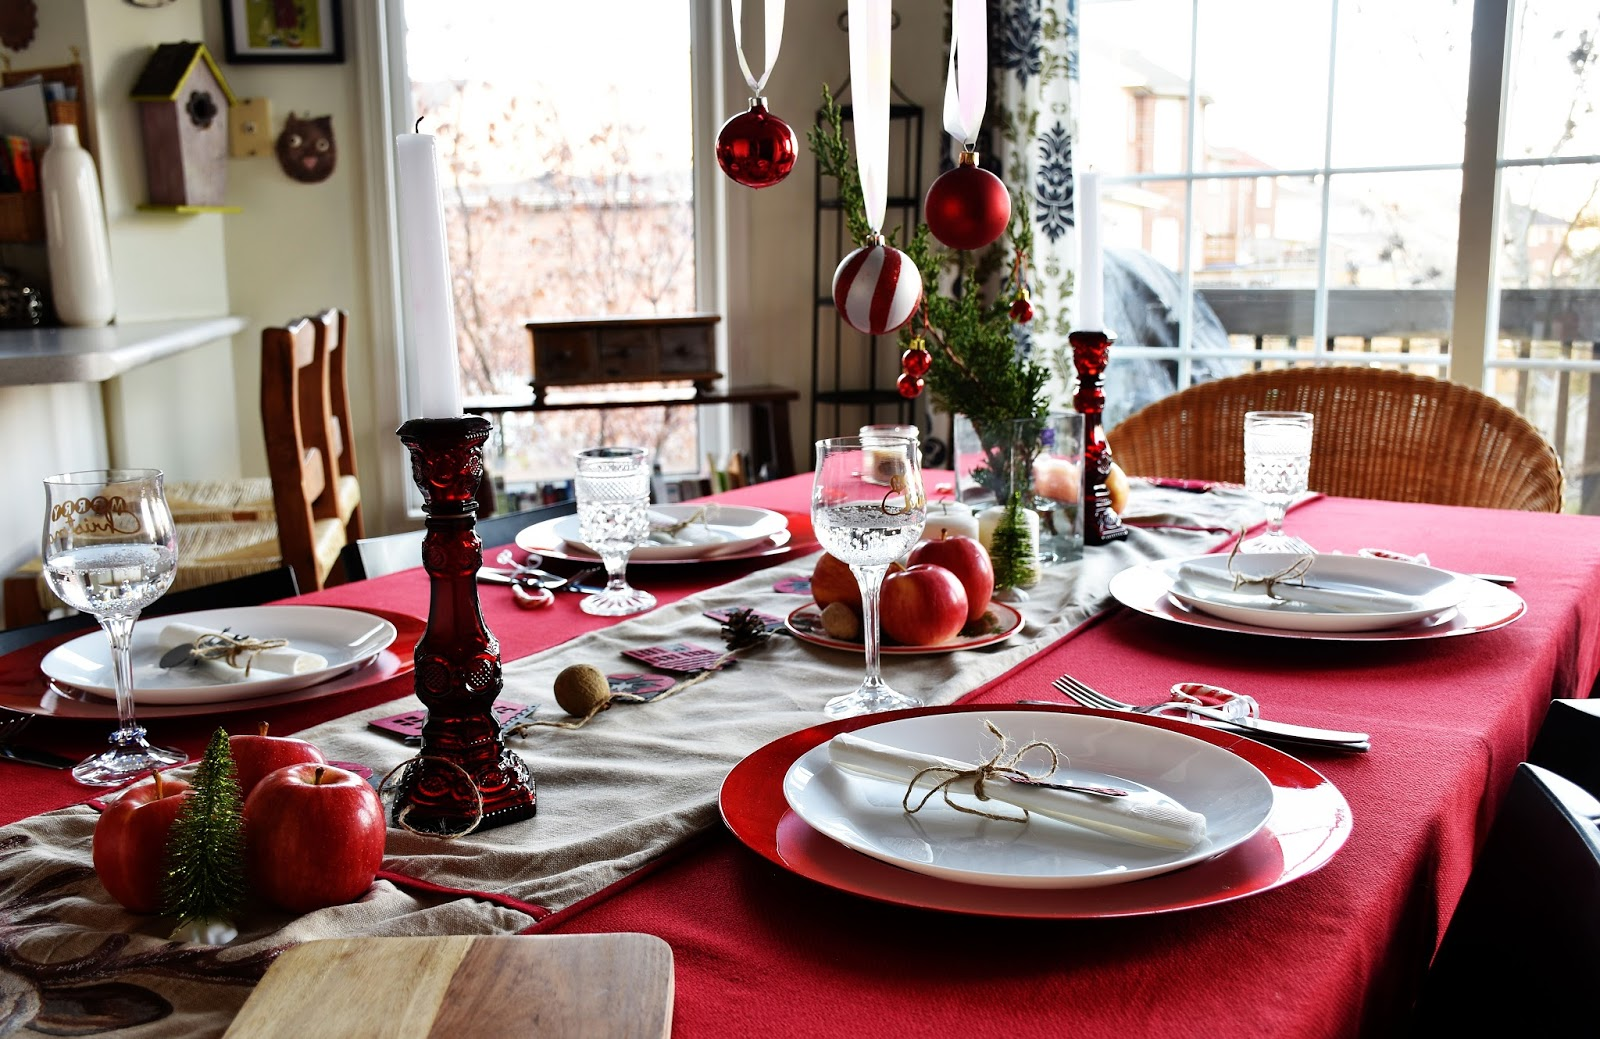 A Family Friendly Red And White Scandi Inspired Christmas Table With Cricut Designs